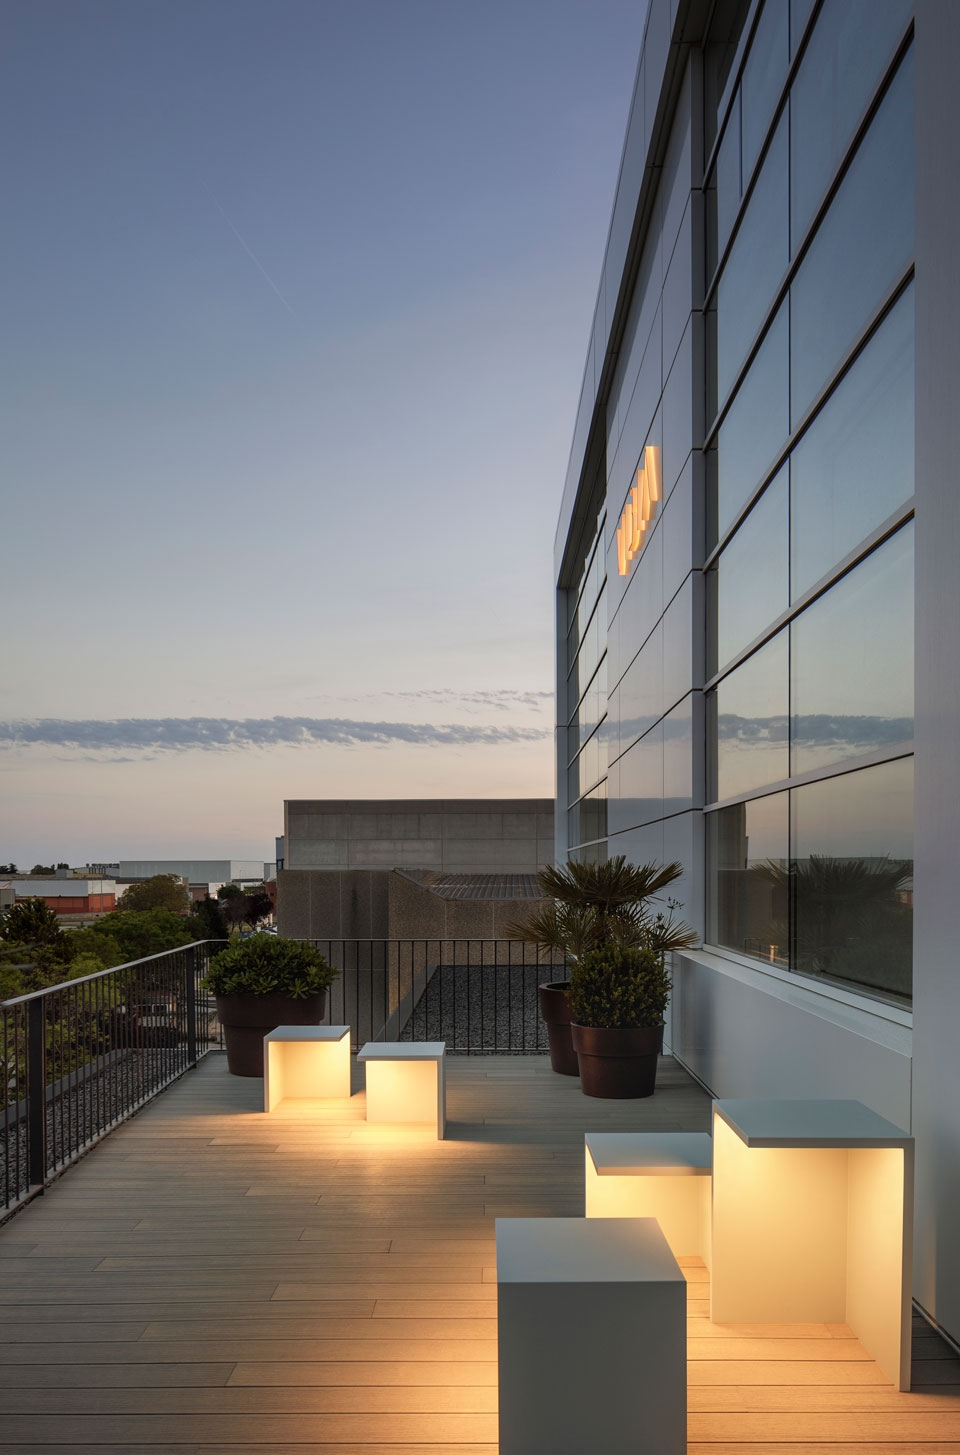 Vibia The Edit - Vibia Headquarters' Terraces: Display of Outdoor Lighting Collections